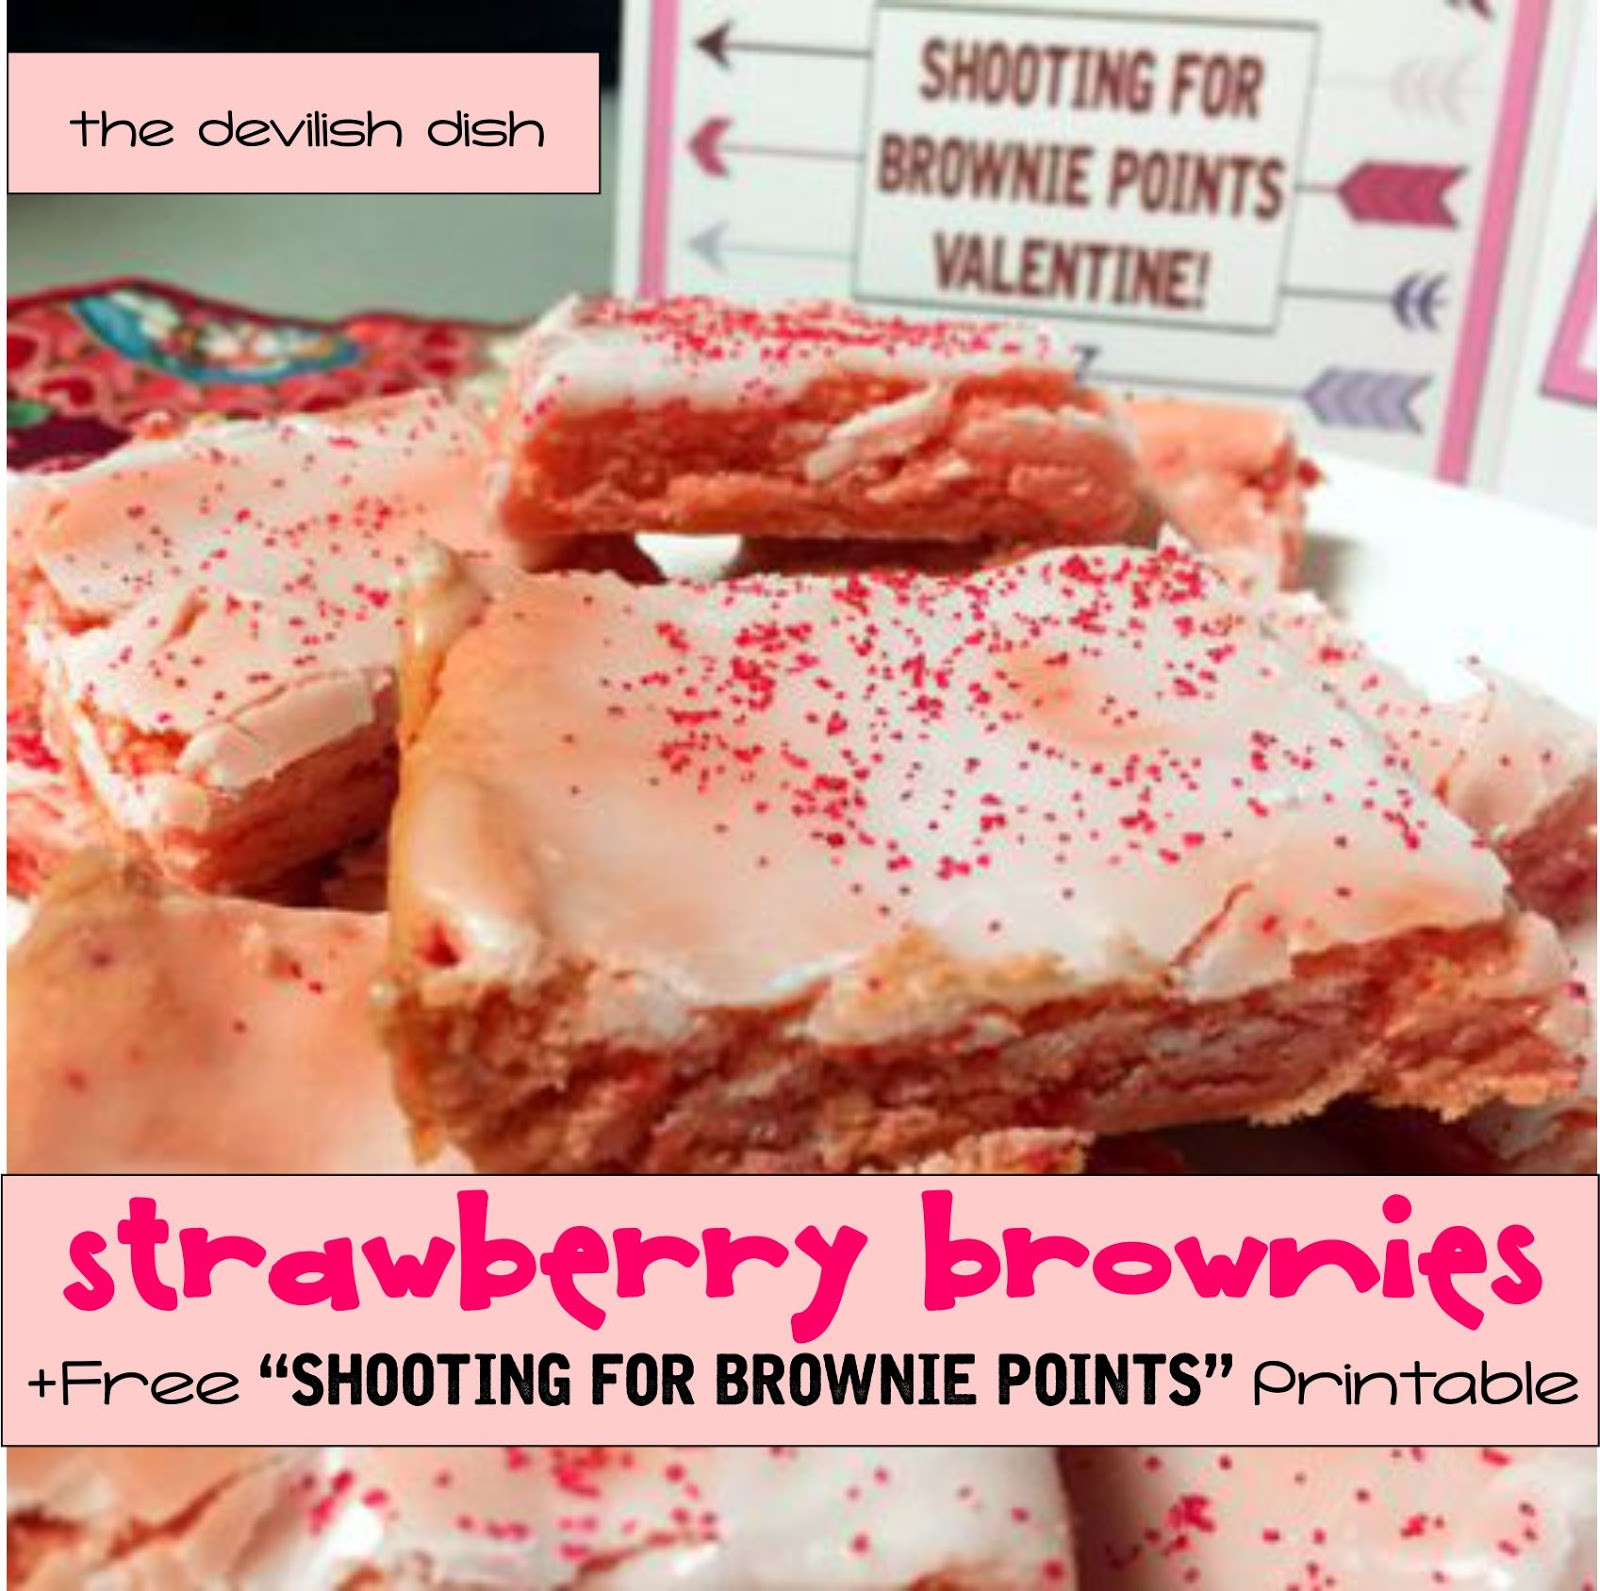 image relating to Shooting for Brownie Points Free Printable called The Devilish Dish: Strawberry Brownies +Free of charge \